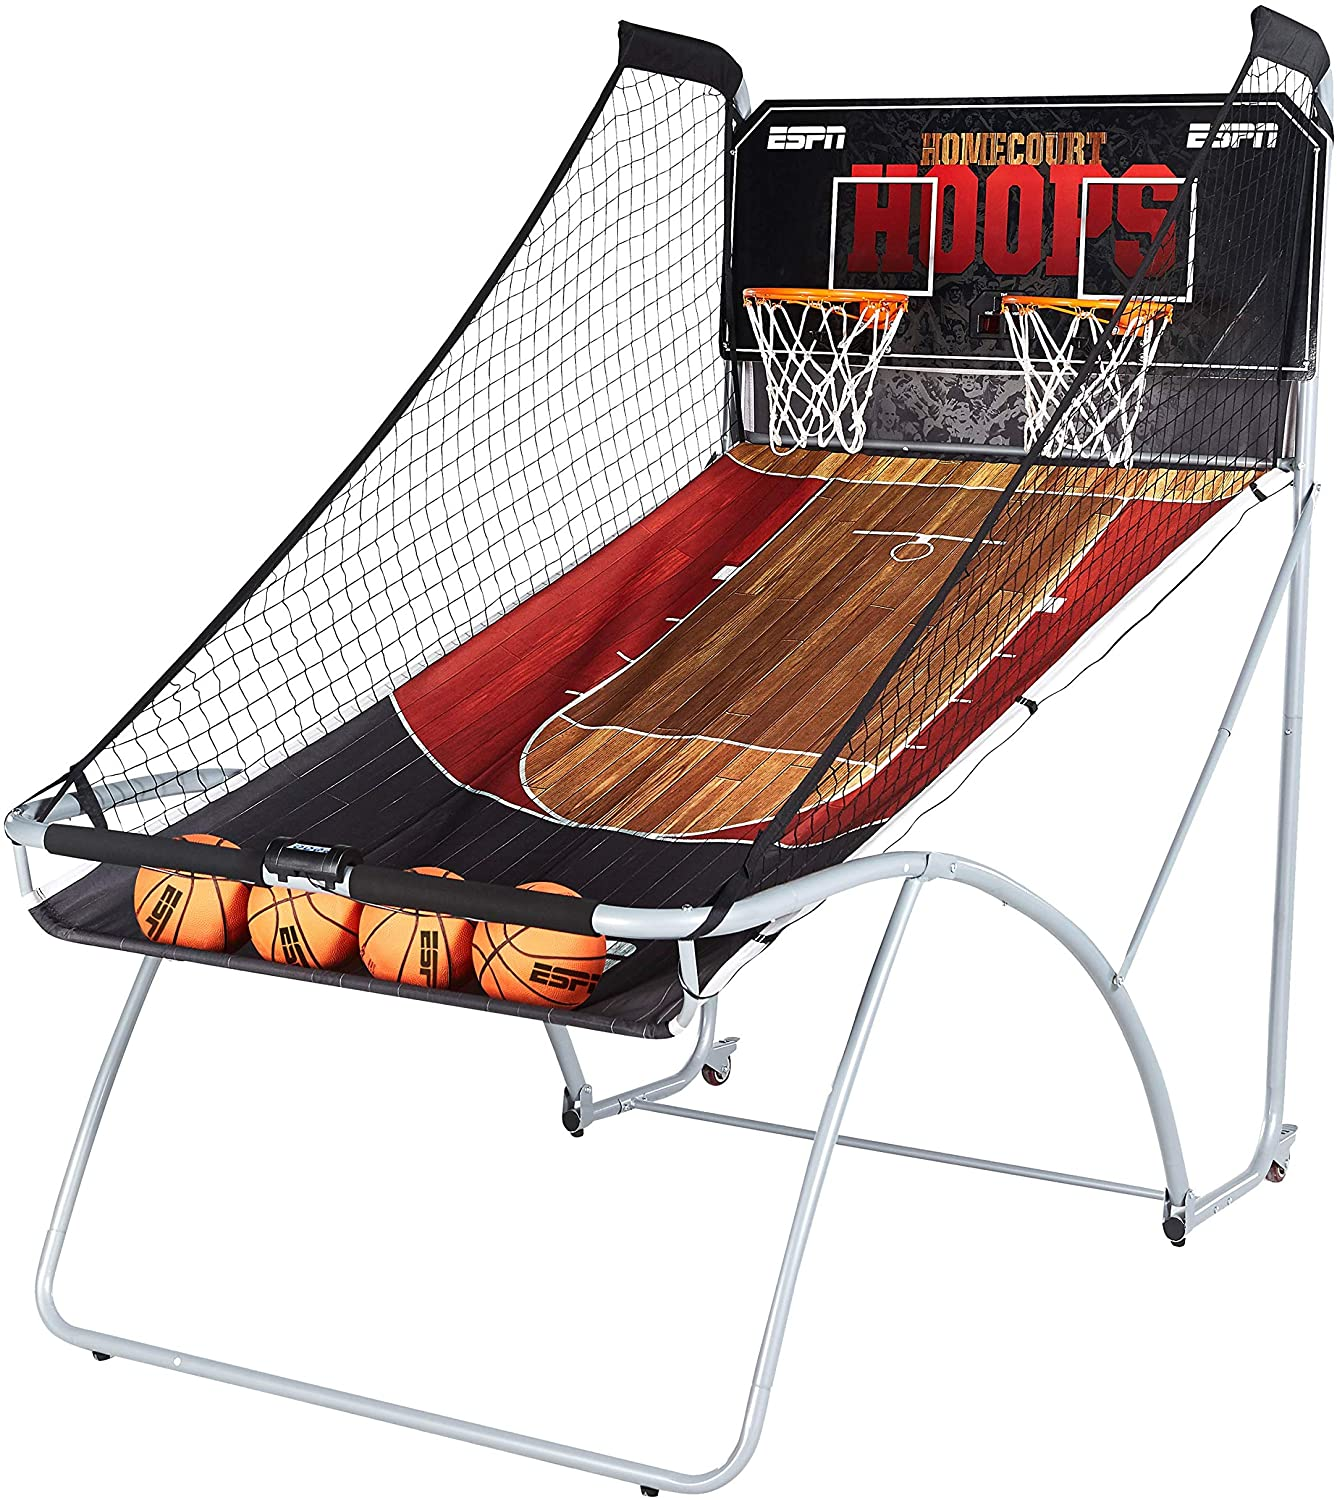 ESPN EZ Fold Indoor Basketball Game for 2 Players with LED Scoring and Arcade Sound Effects (6 Piece Set)